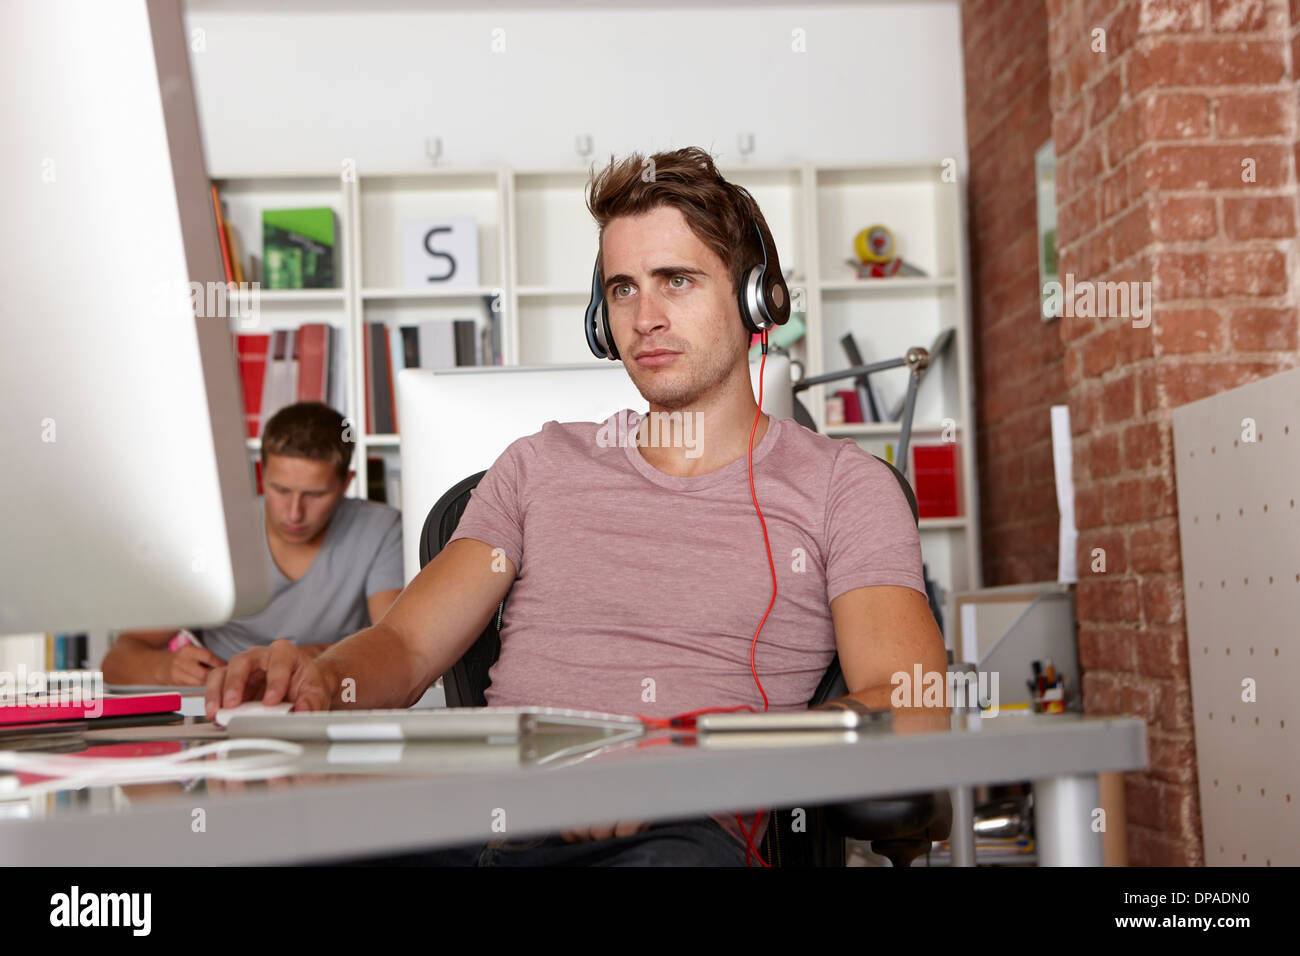 Young man at work wearing headphones - Stock Image